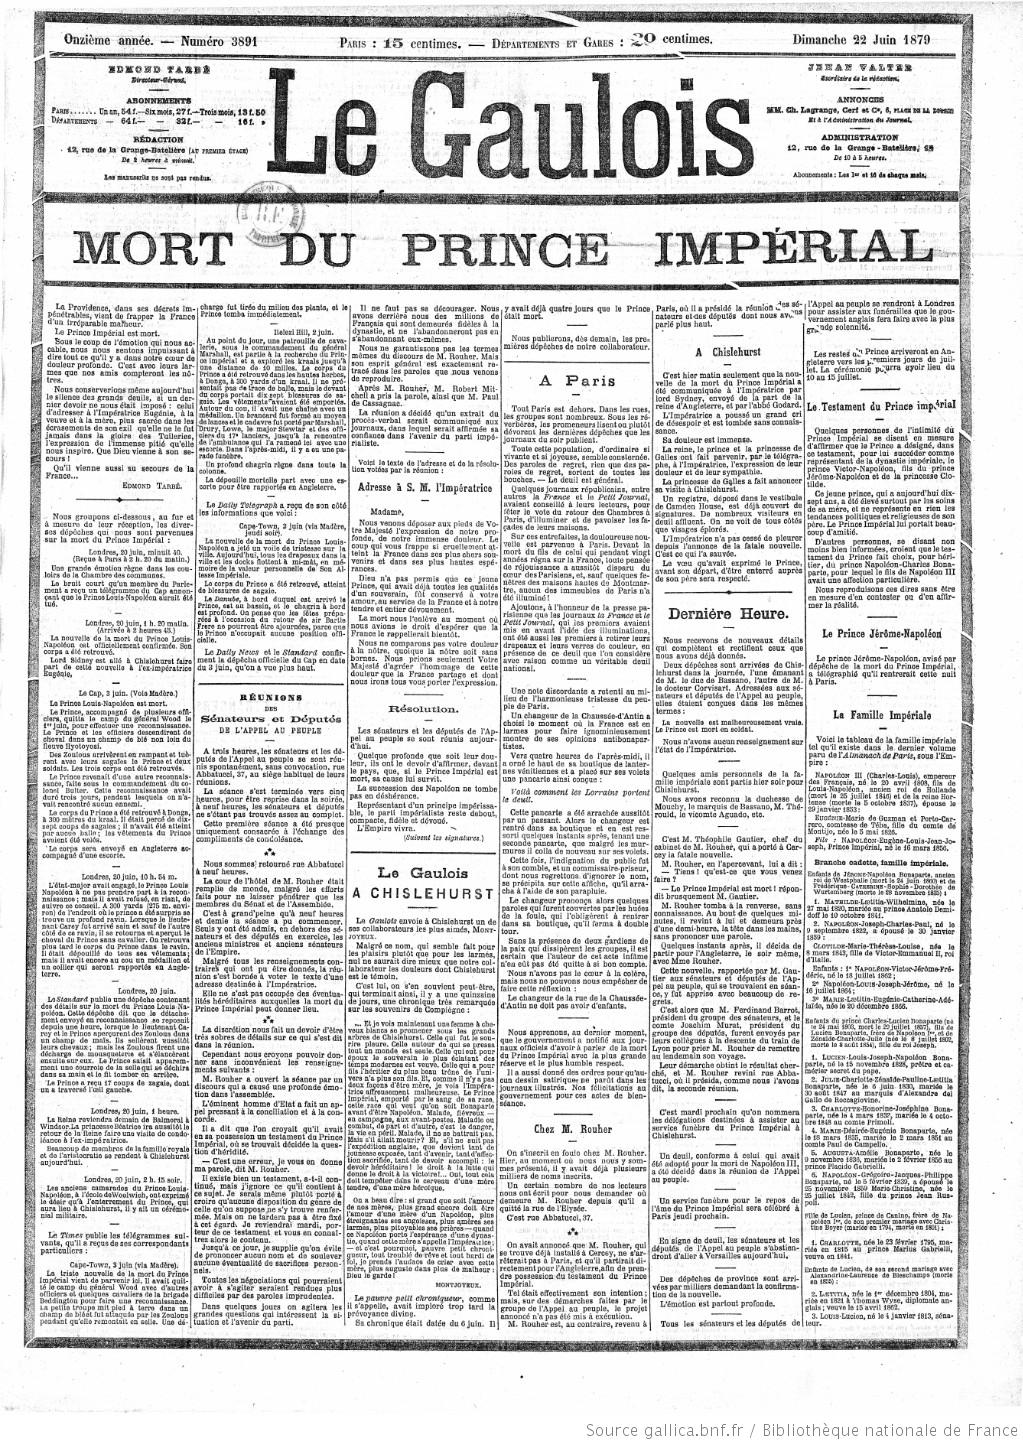 Le Gaulois Mort prince imperial (1)